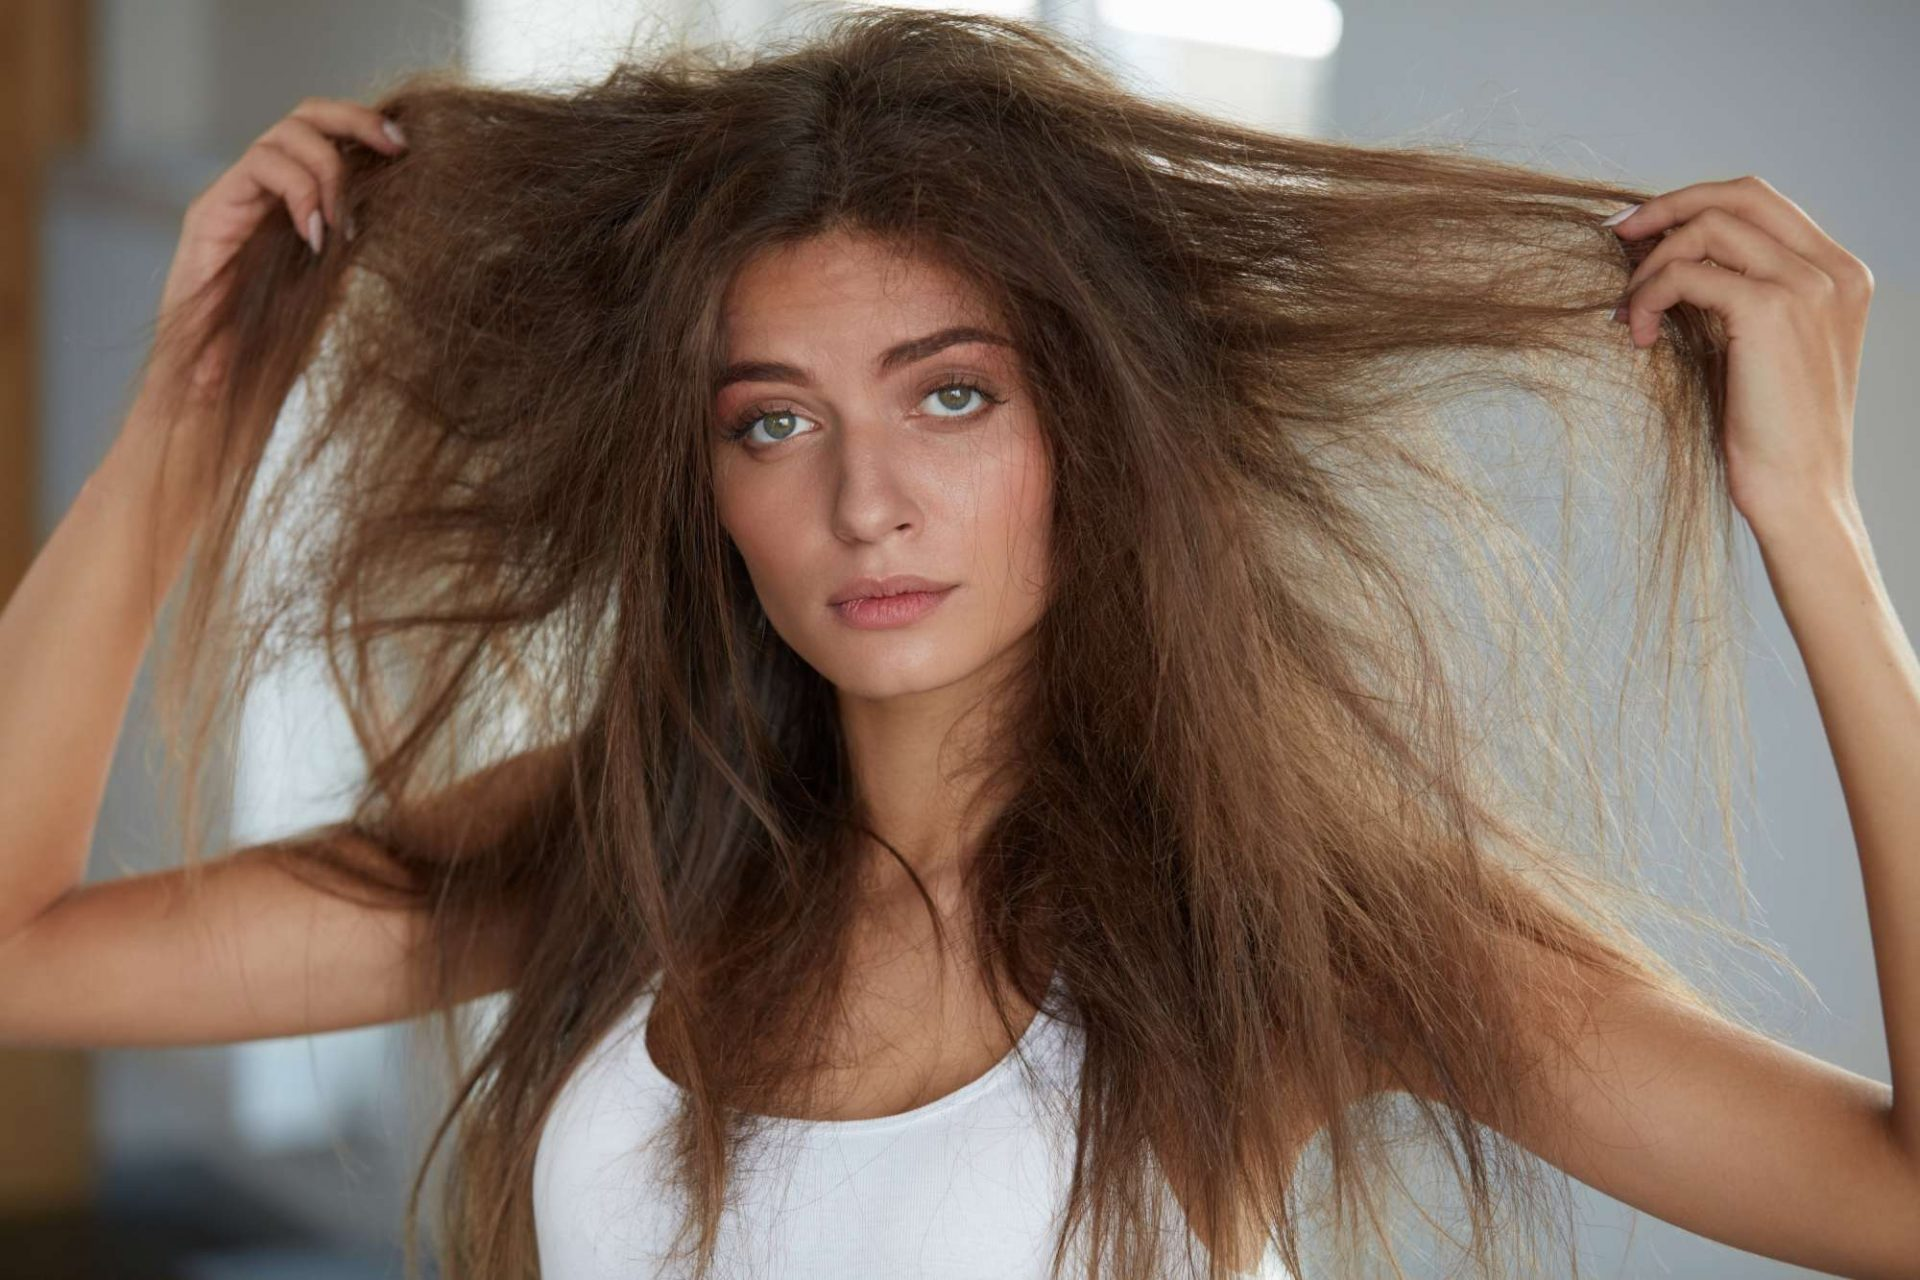 Frizzy Hair? Never Again! Tried-and-Trusted Anti-Frizz Tricks!